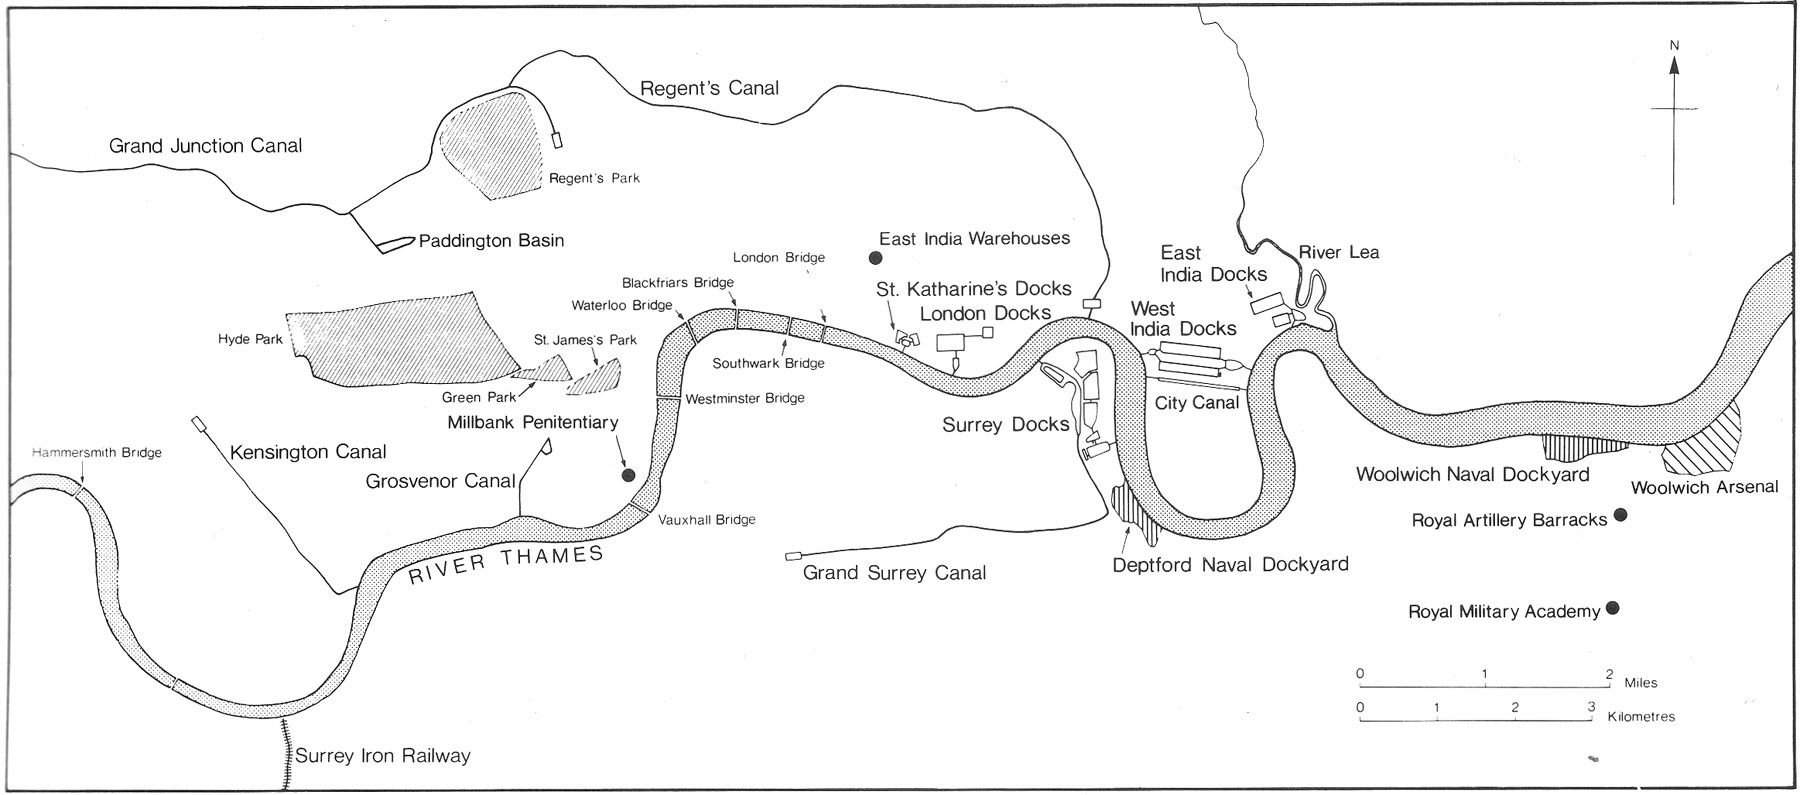 map of London and River Thames in 1830